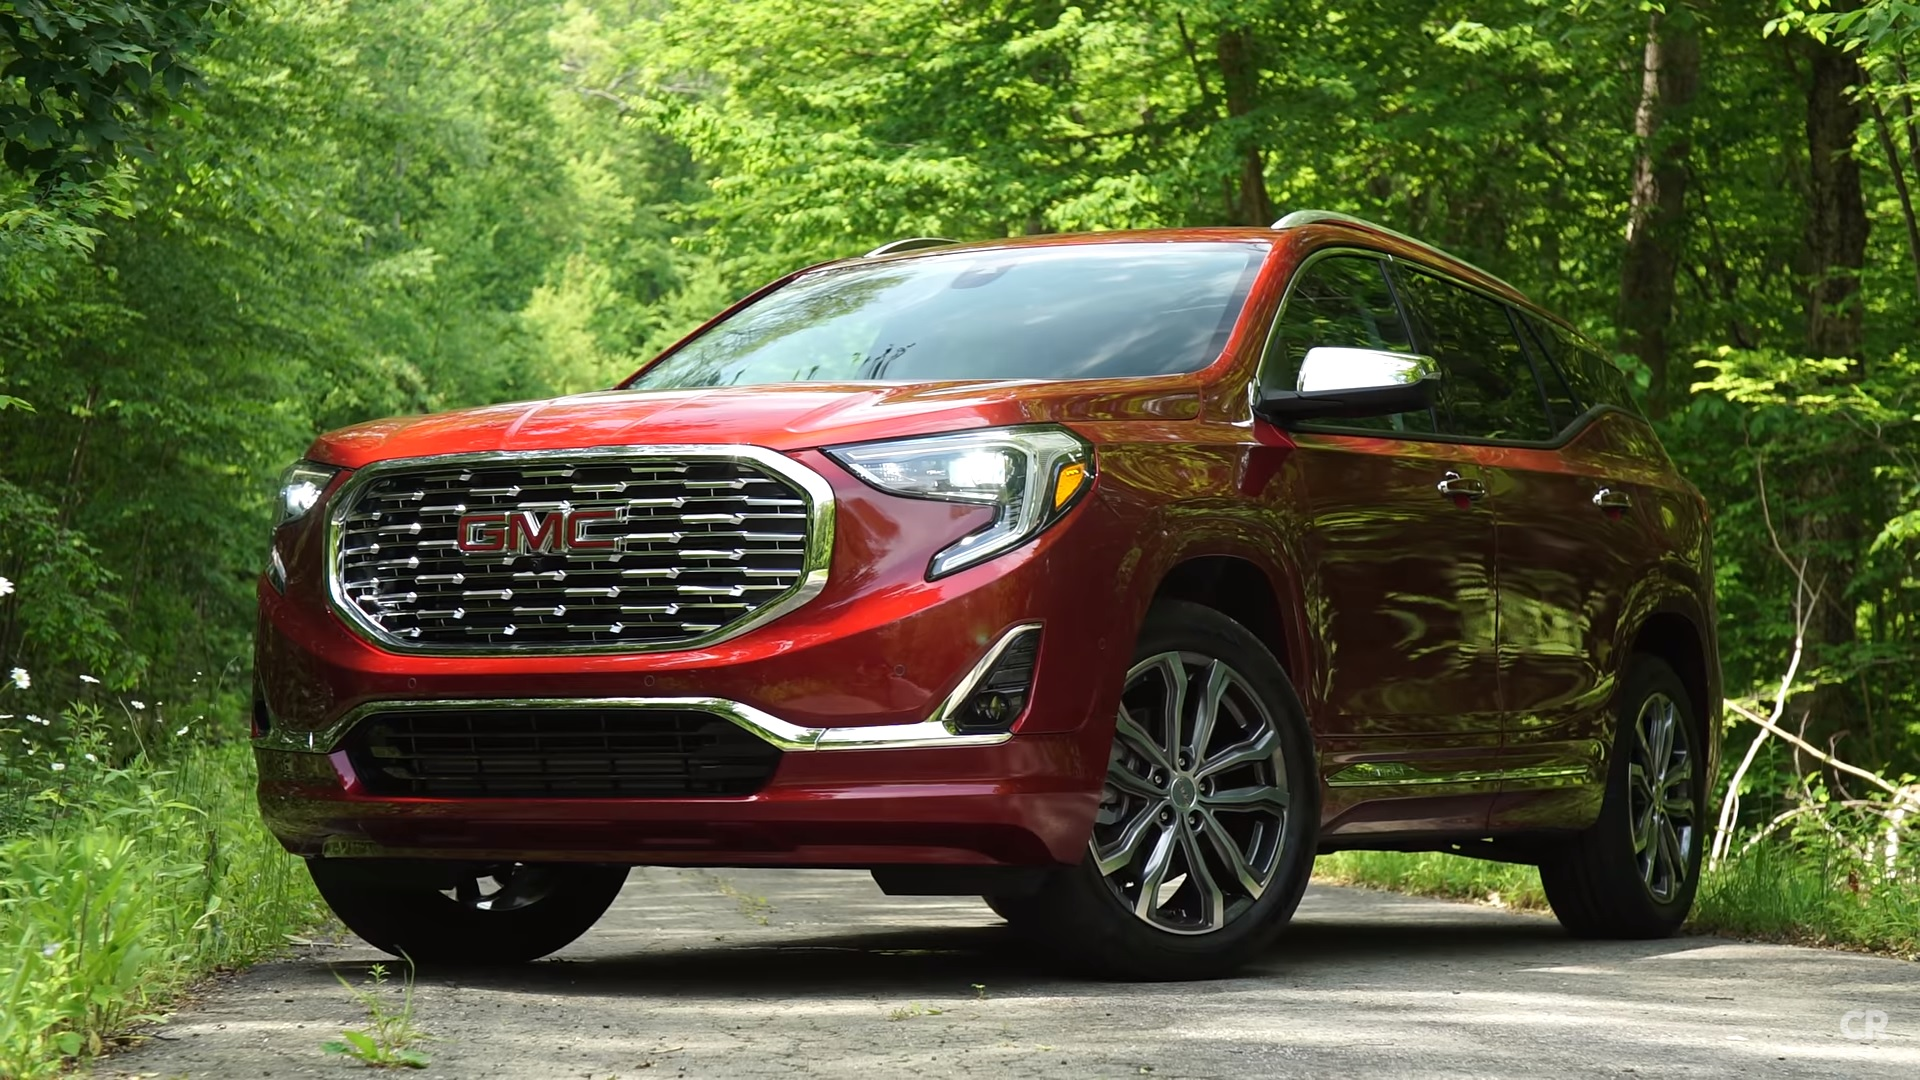 Consumer Reports Rips The 2018 GMC Terrain To Shreds In Its Latest Review    Top Speed. »